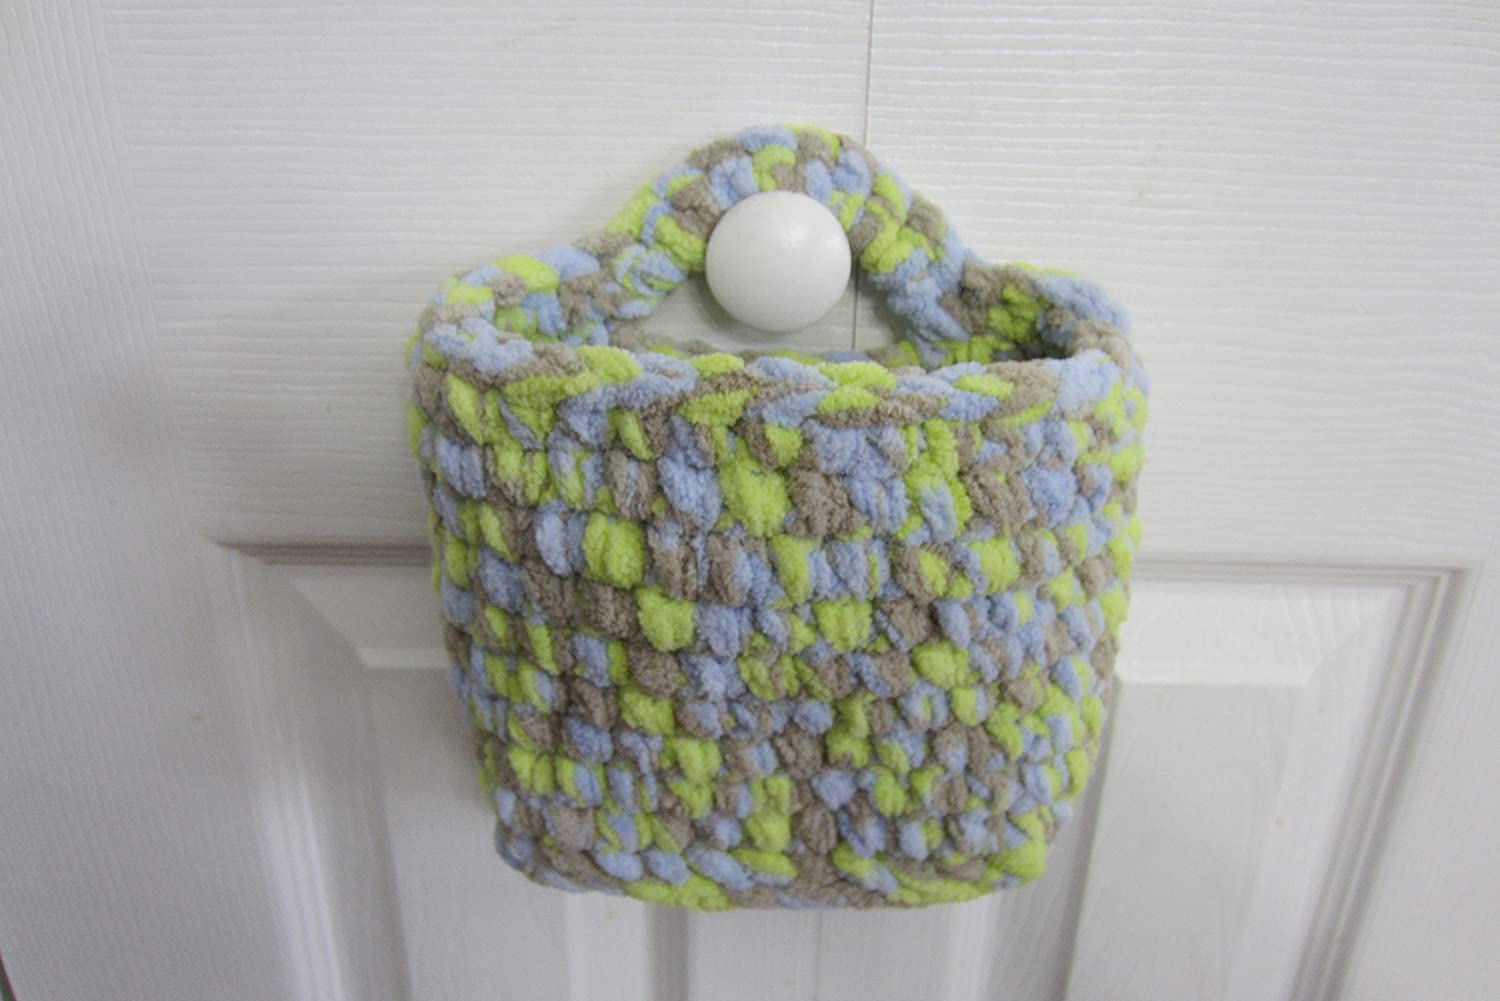 Hanging Basket, Medium Storage Rectangle Wall Baskets - Many Color Choices!